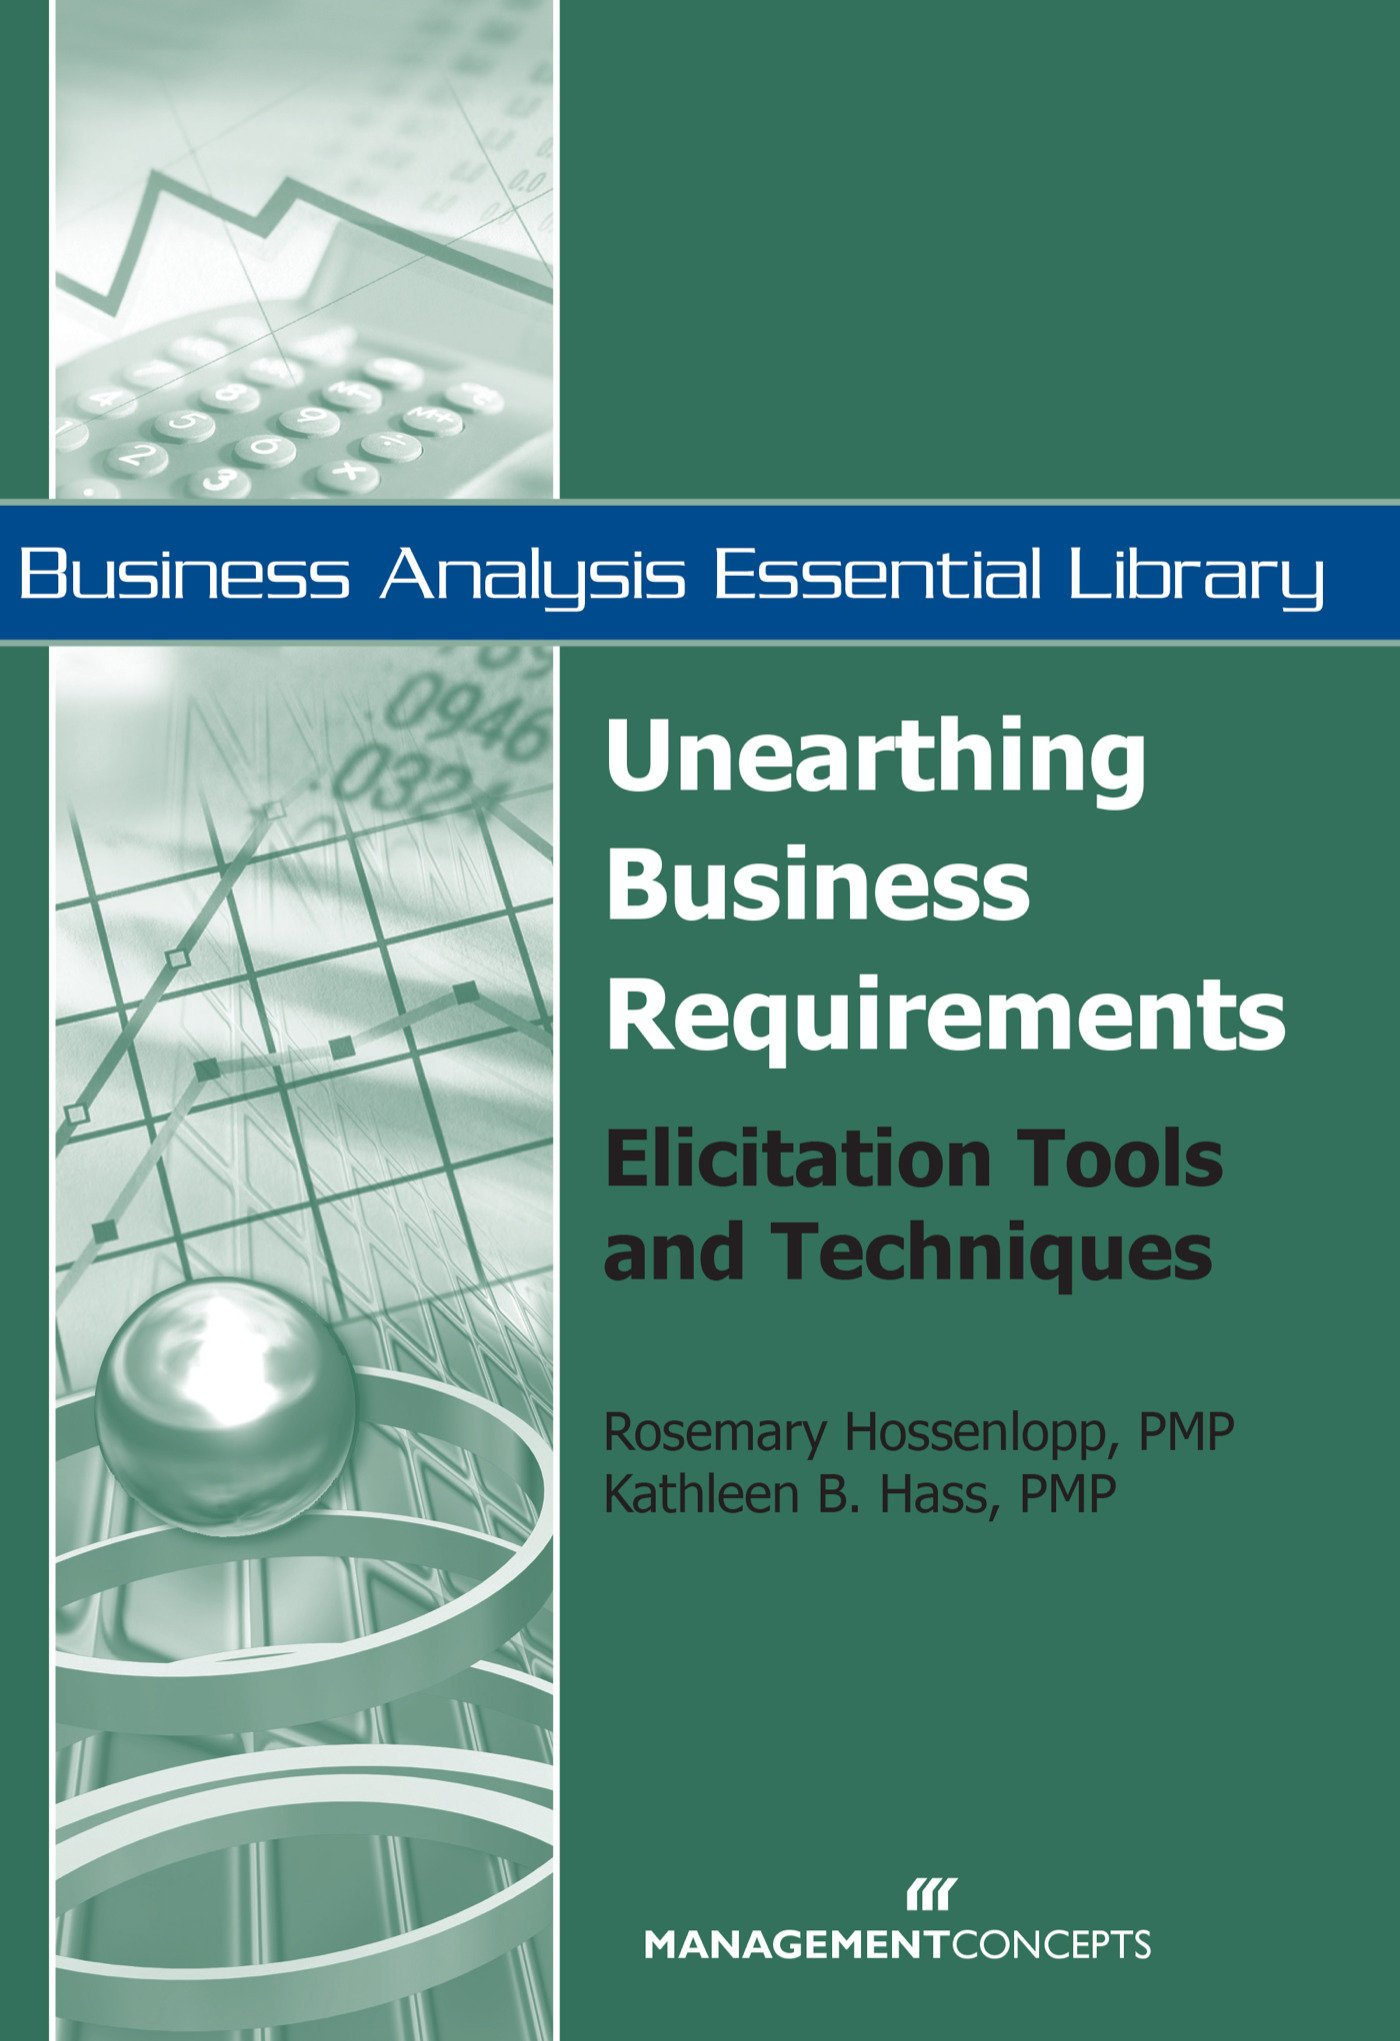 Amazoncom Unearthing Business Requirements Elicitation Tools And - Business requirements tools